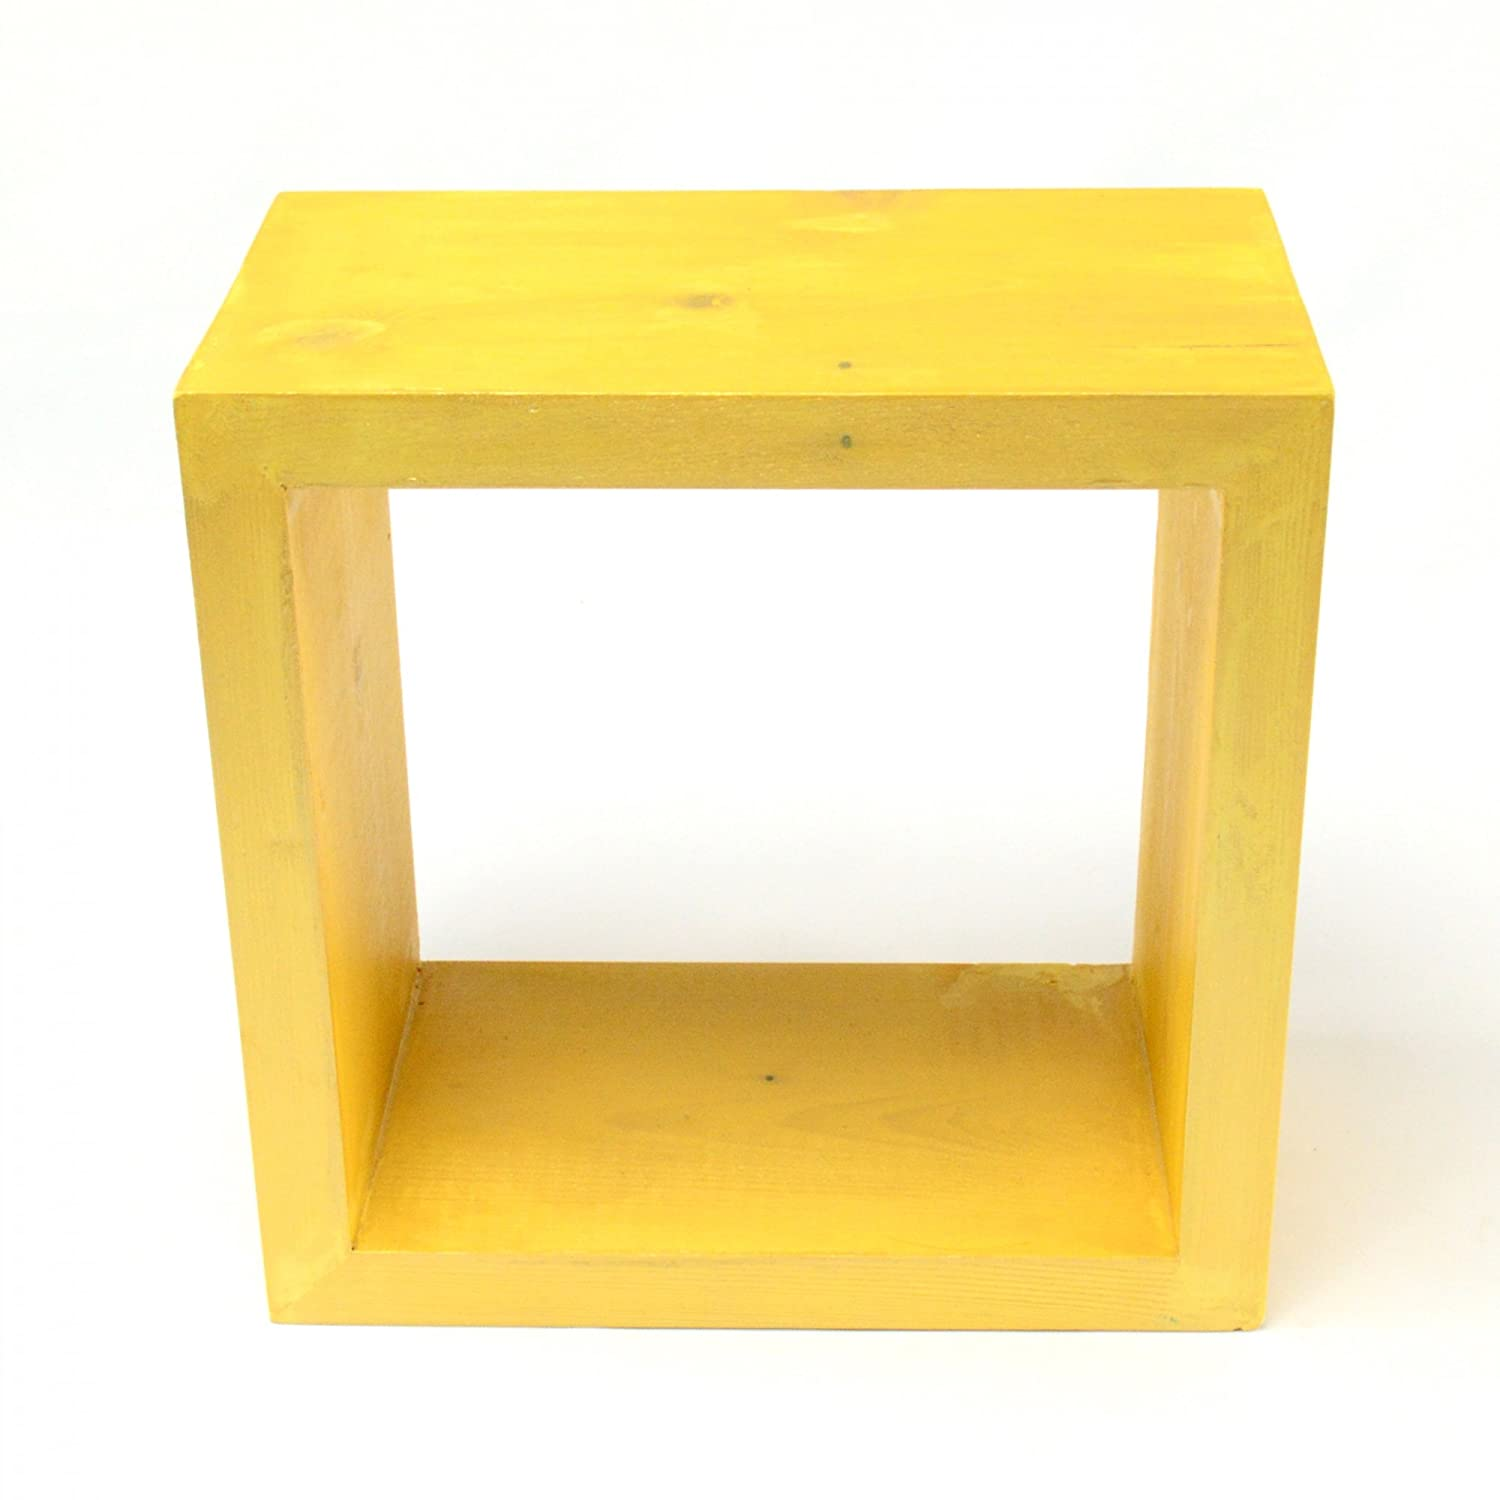 Wall shelf Wooden floating shelves Display unit cube box square small red